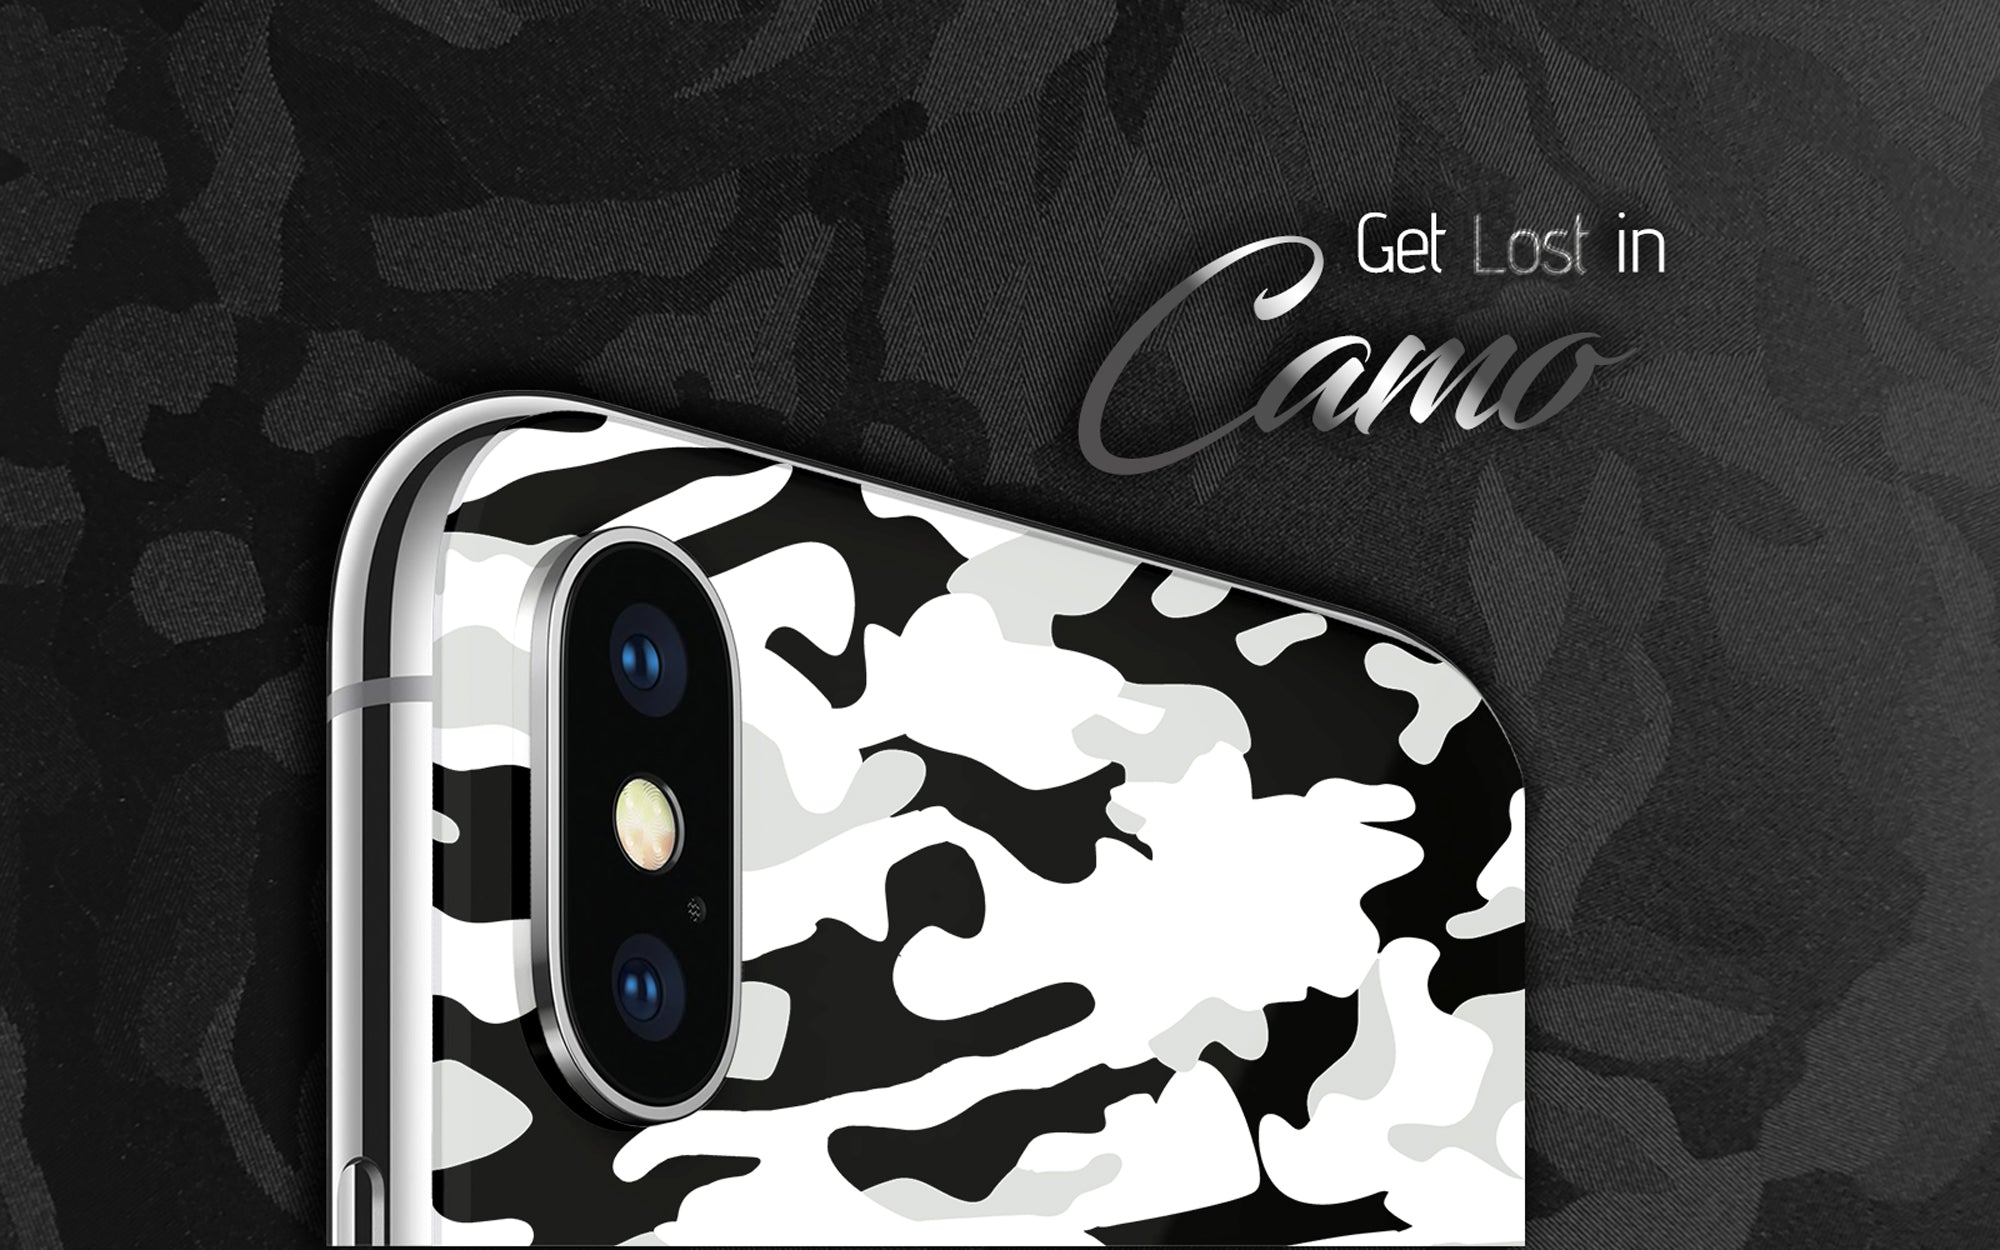 Get lost in Camo.  Camo skins and wraps for iPhone X, iPhone 6 cases, iPhone 7 phone cases, and many other phone cases. Available in Pink camo, Black and White camo, Blue camo, Green camo, Orange camo, and Purple camo